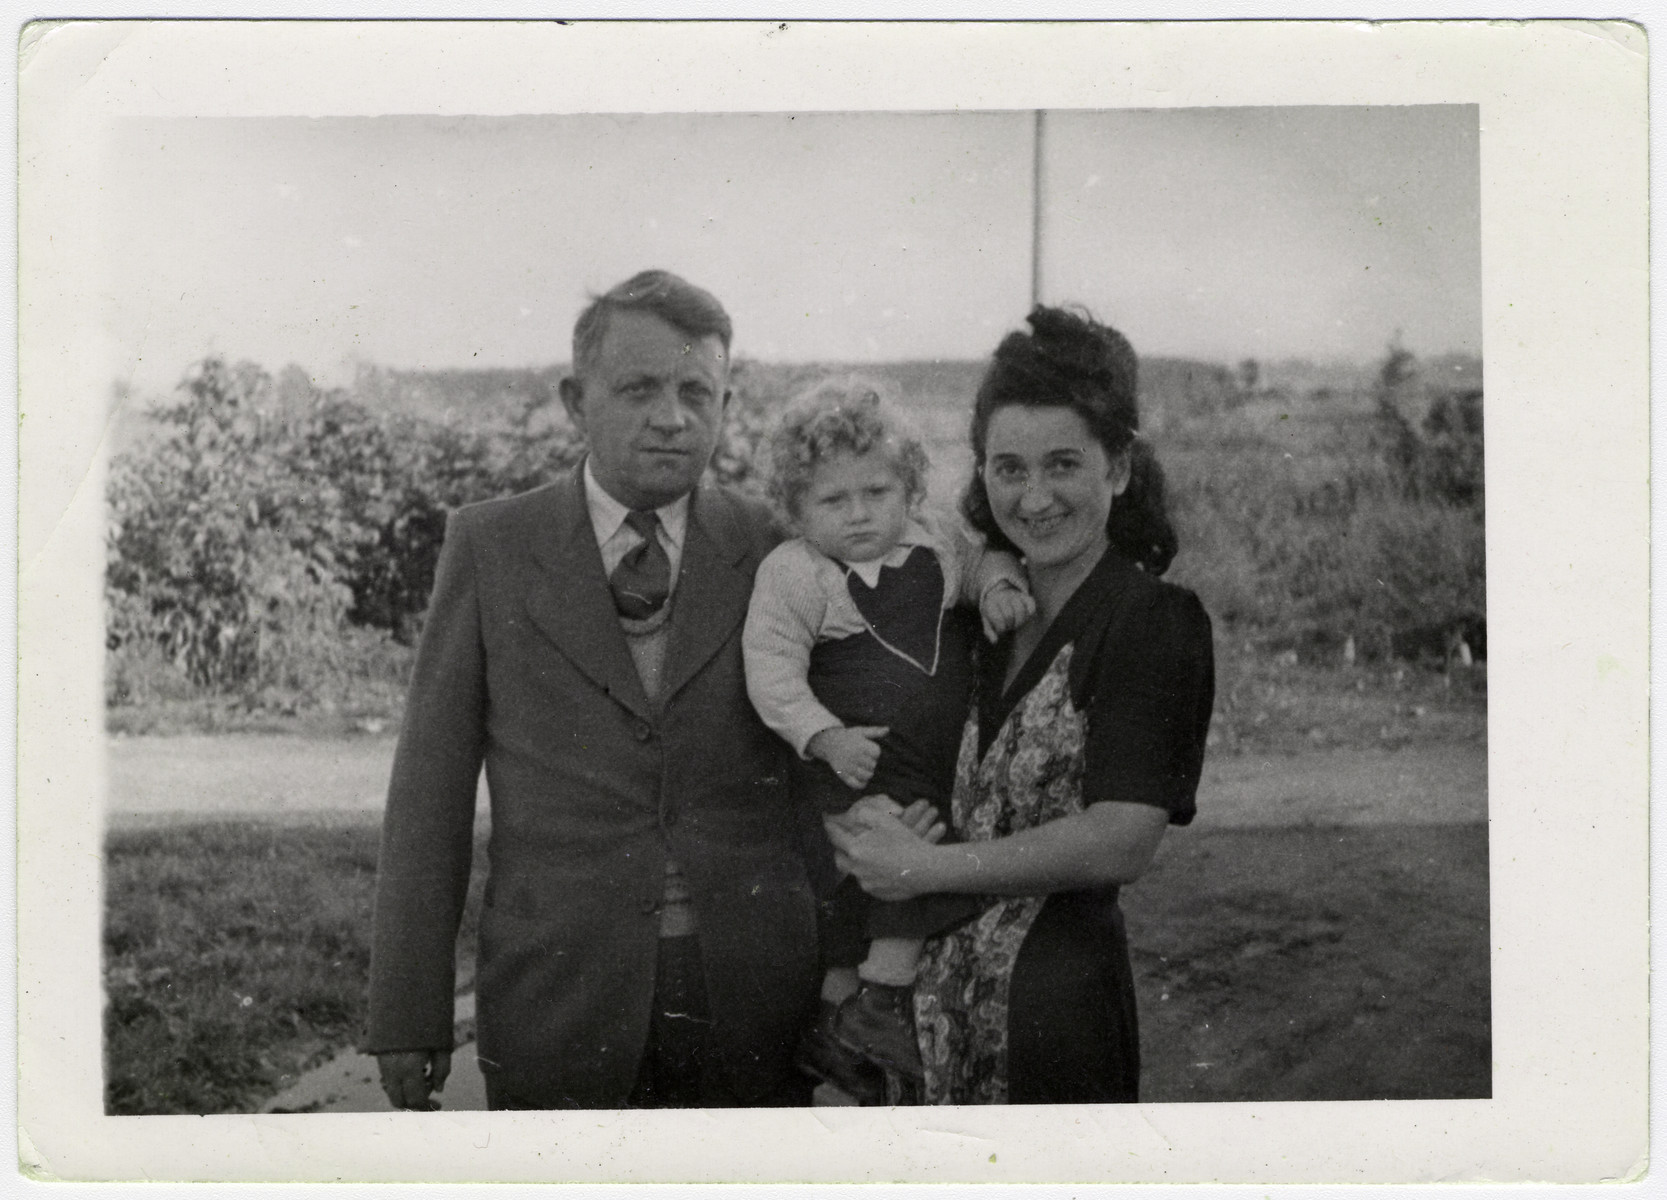 The Beer family poses outside in the Pocking displaced persons' camp.  From left to right are Leo, Max and Genia Beer.